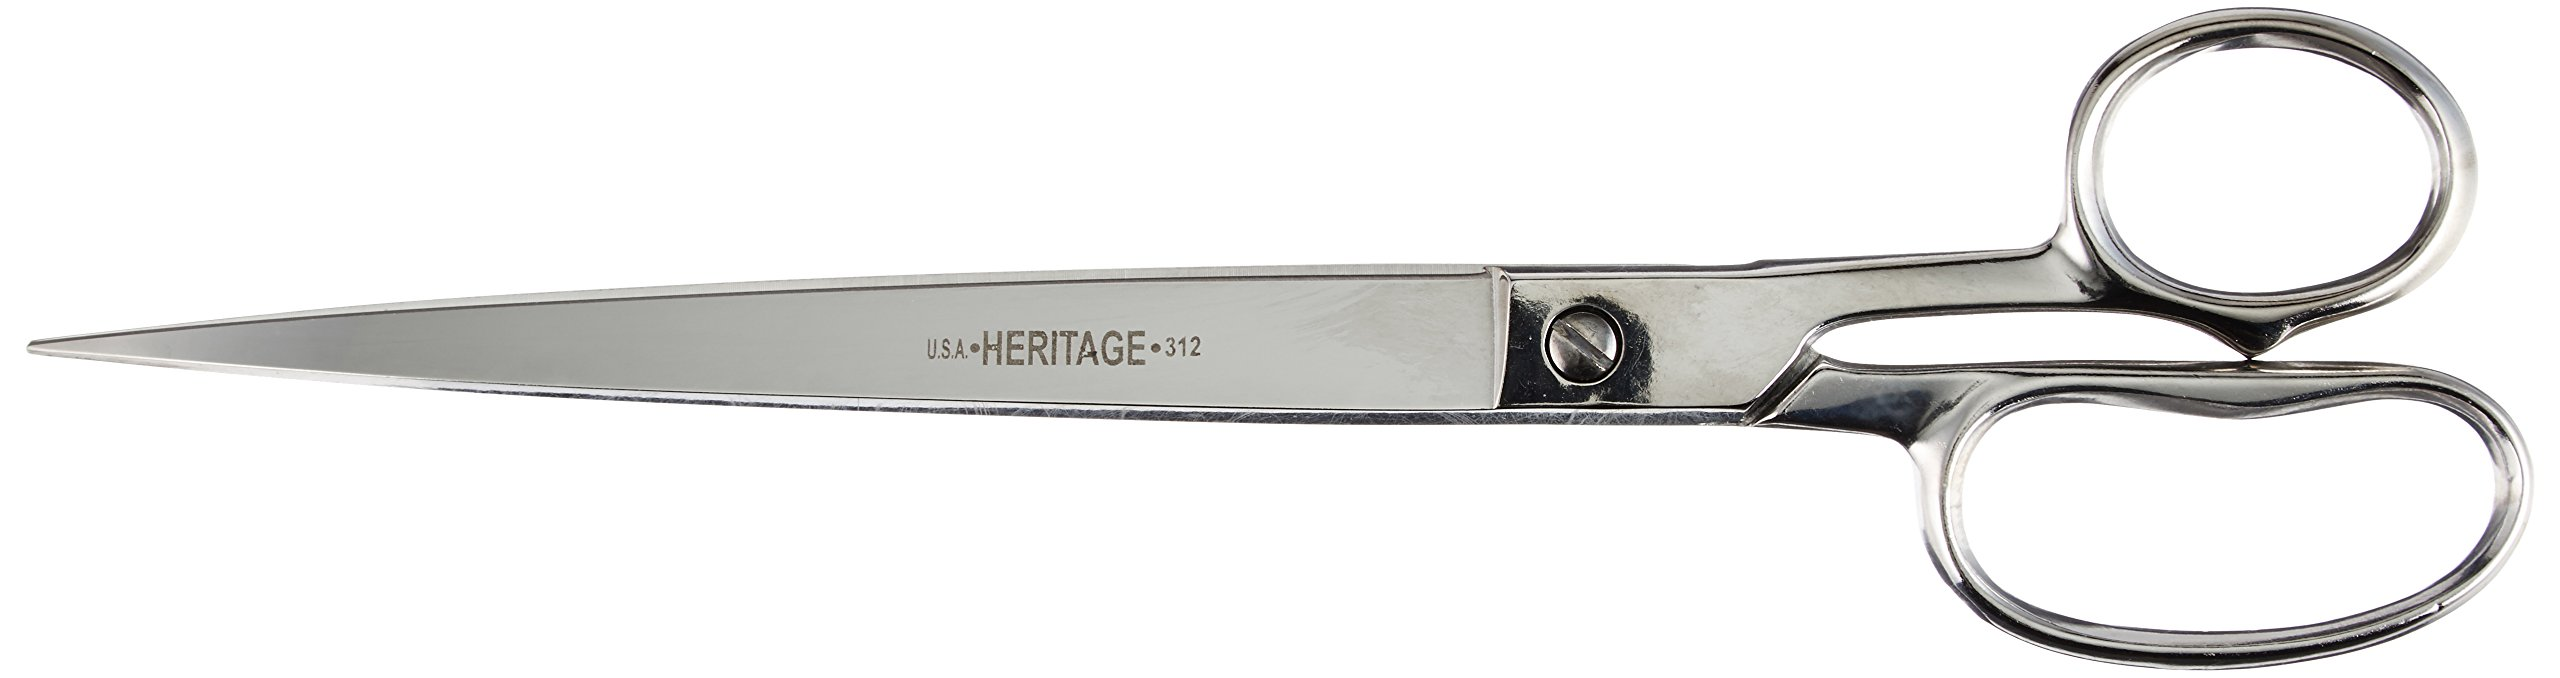 Heritage 312 Paper Shears